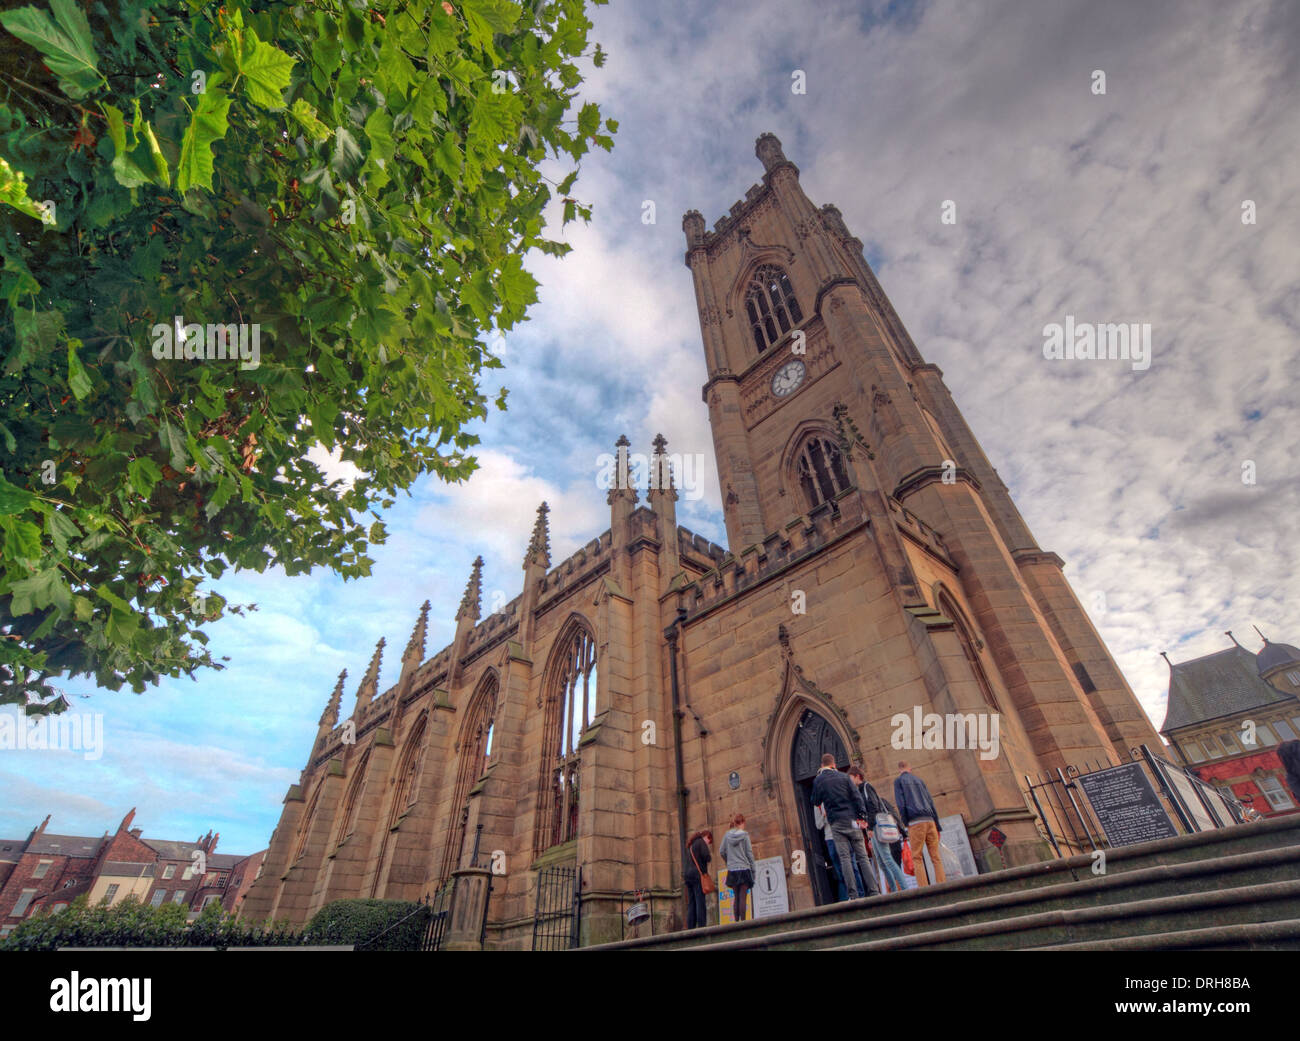 parish,church,known,locally,as,the,Bombed,Out,Church,shell,monument,to,the,second,world,war,worldwar,Berry,Street,and,Leece,St,looking,down,the,length,of,Bold,Street,John,foster,architect,surveyors,for,the,municipal,Corporation,of,Liverpool,event,events,Grade,II,grade2,gradeII,blitz,wide,GoTonySmith Bold St,Liverpool,Merseyside,England,UK the bombed-out bombedout angle wideangle ashlar sandstone,and,is,in,Perpendicular,style.,Its,plan,currently,consists,of,a,five-bay,nave,a four-bay chancel with an apsidal end,and a west tower,Buy Pictures of,Buy Images Of